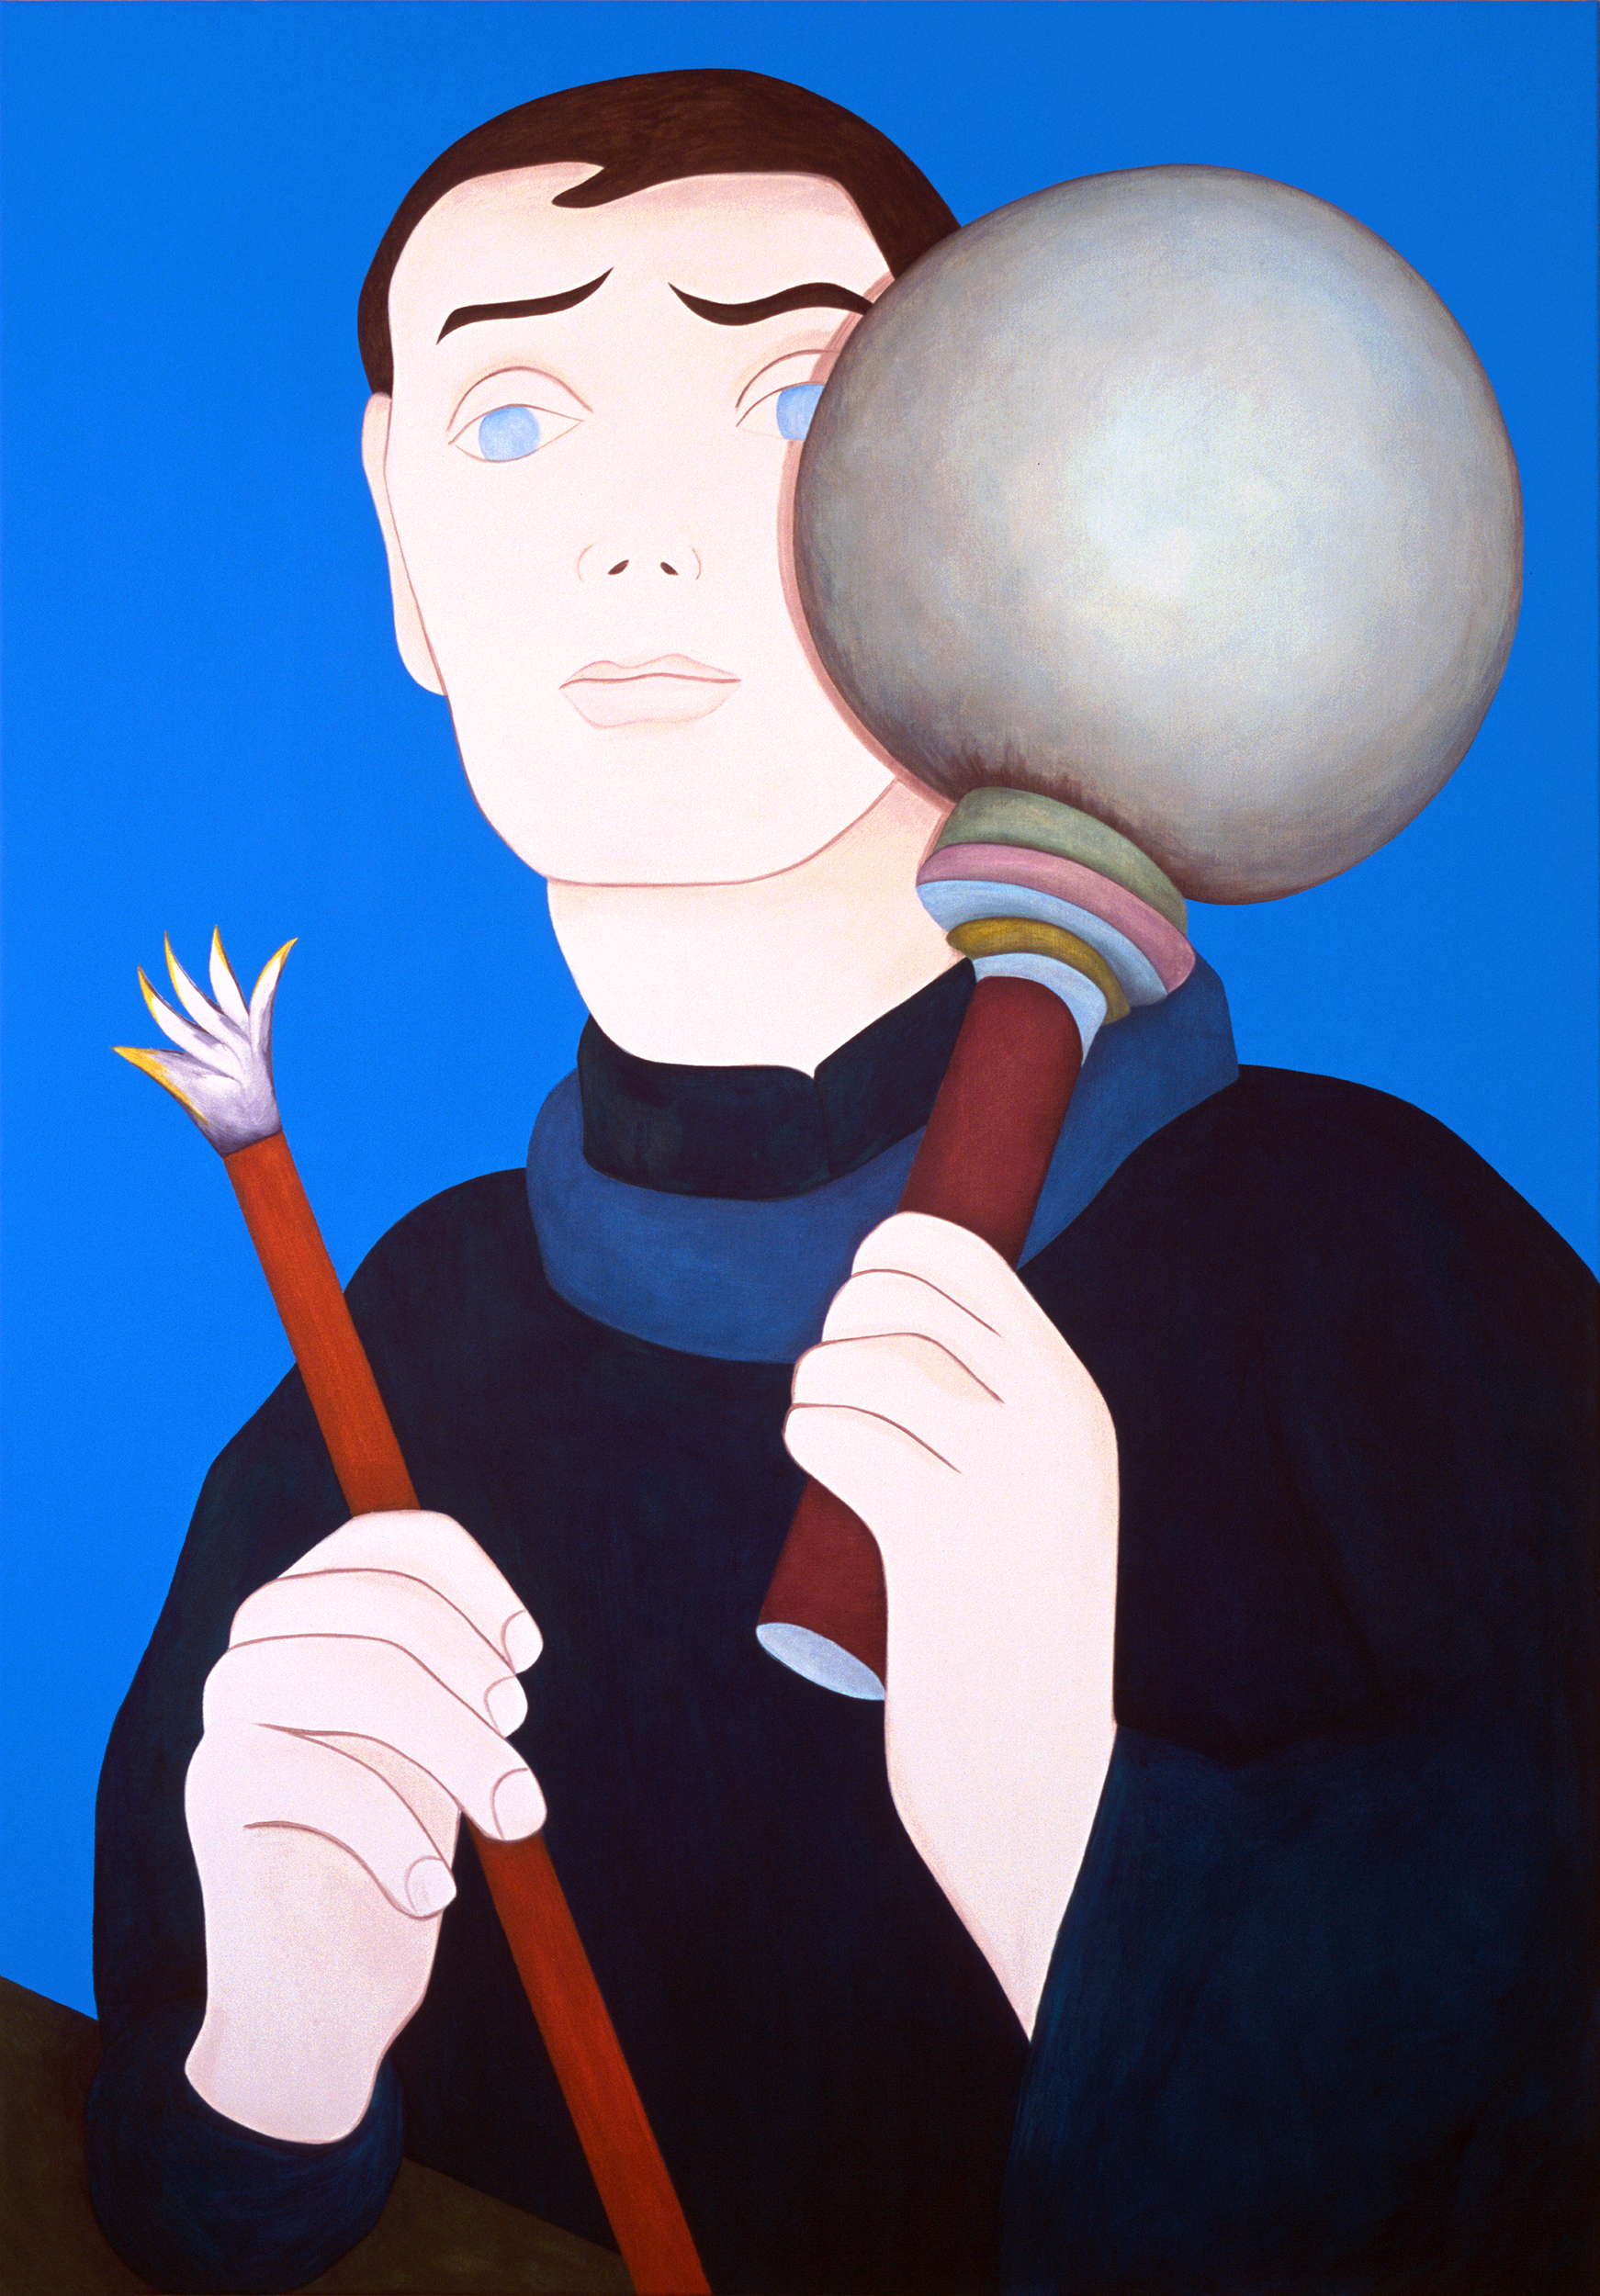 Self-portrait with an Orb, painting by Wouter van Riessen